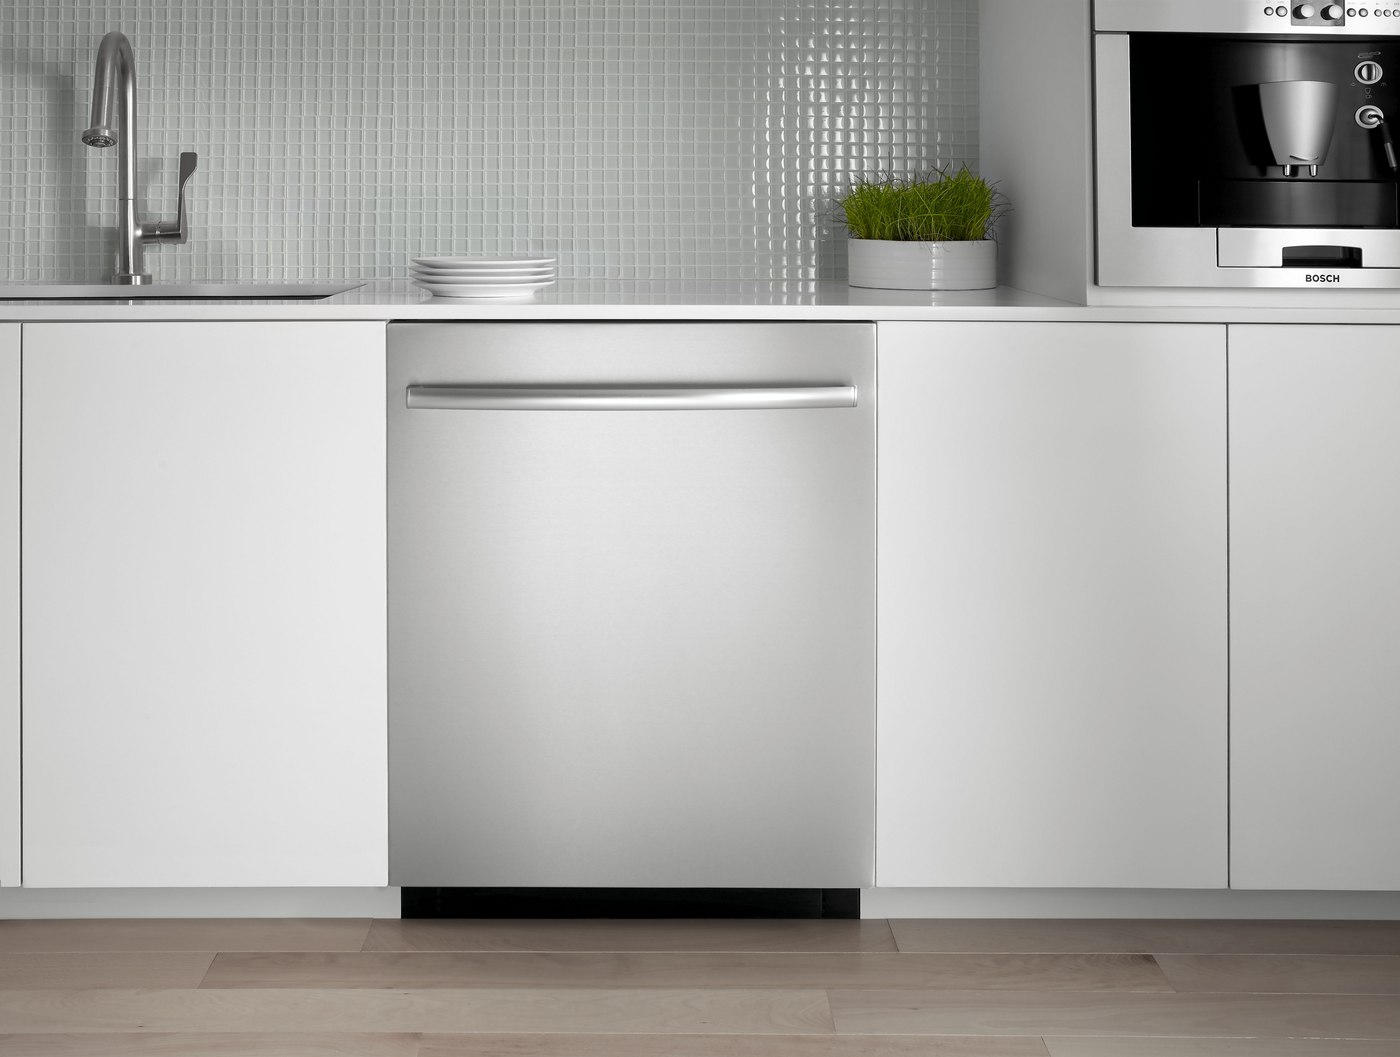 kitchen dishwasher build a american style vs european dishwashers reviews